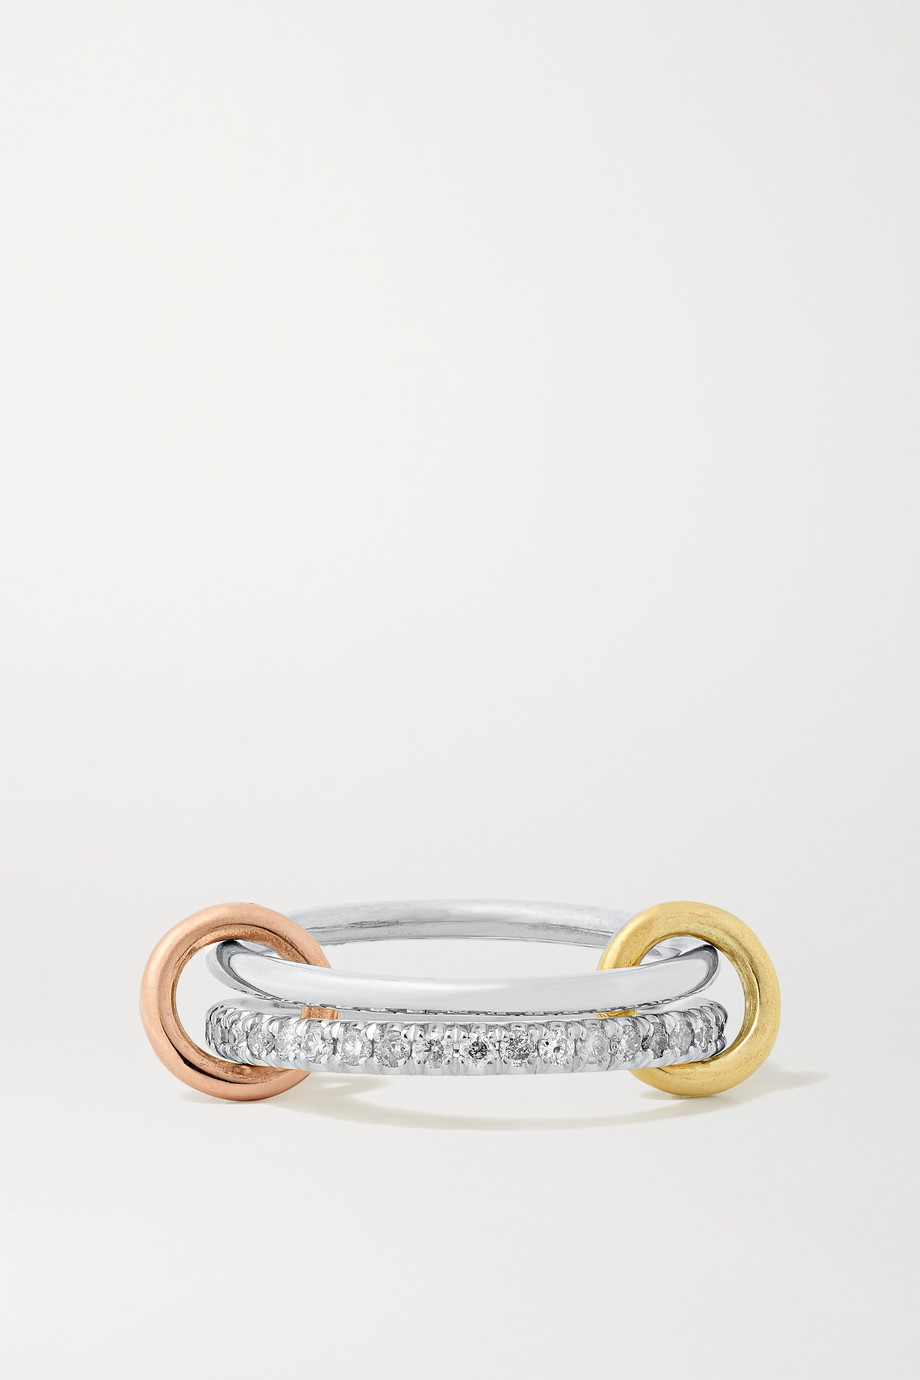 SPINELLI KILCOLLIN Marigold set of two sterling silver, 18-karat yellow and rose gold and diamond rings